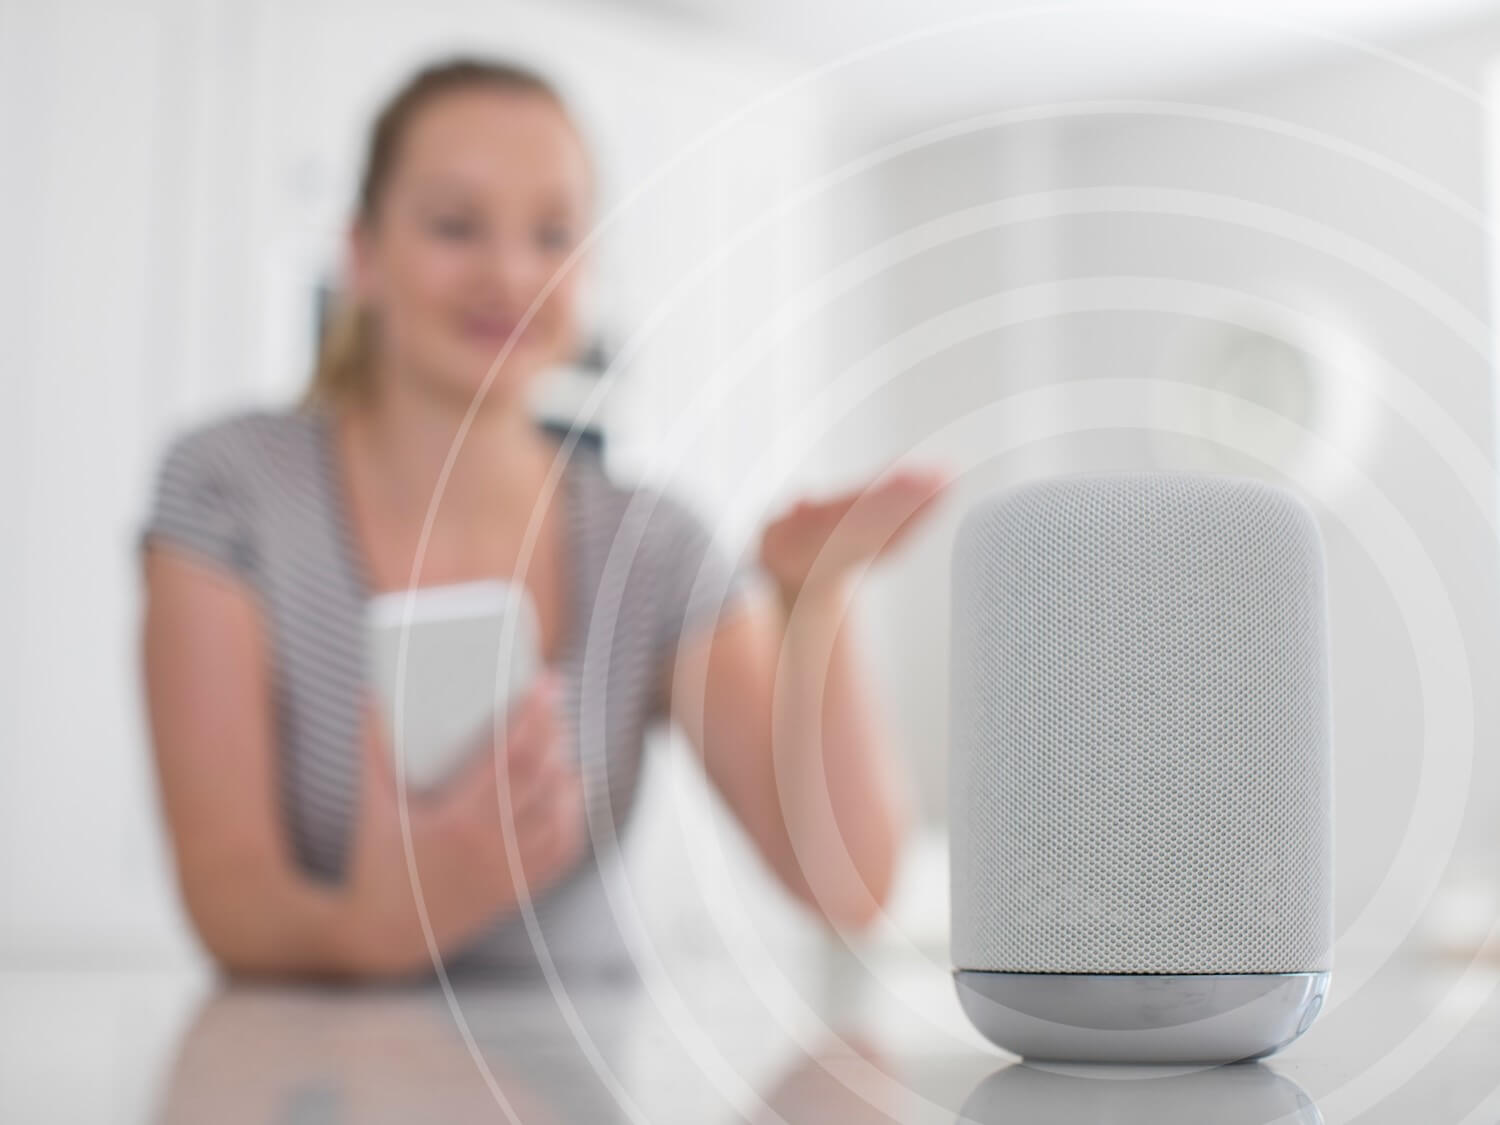 Woman speaking into smart speaker